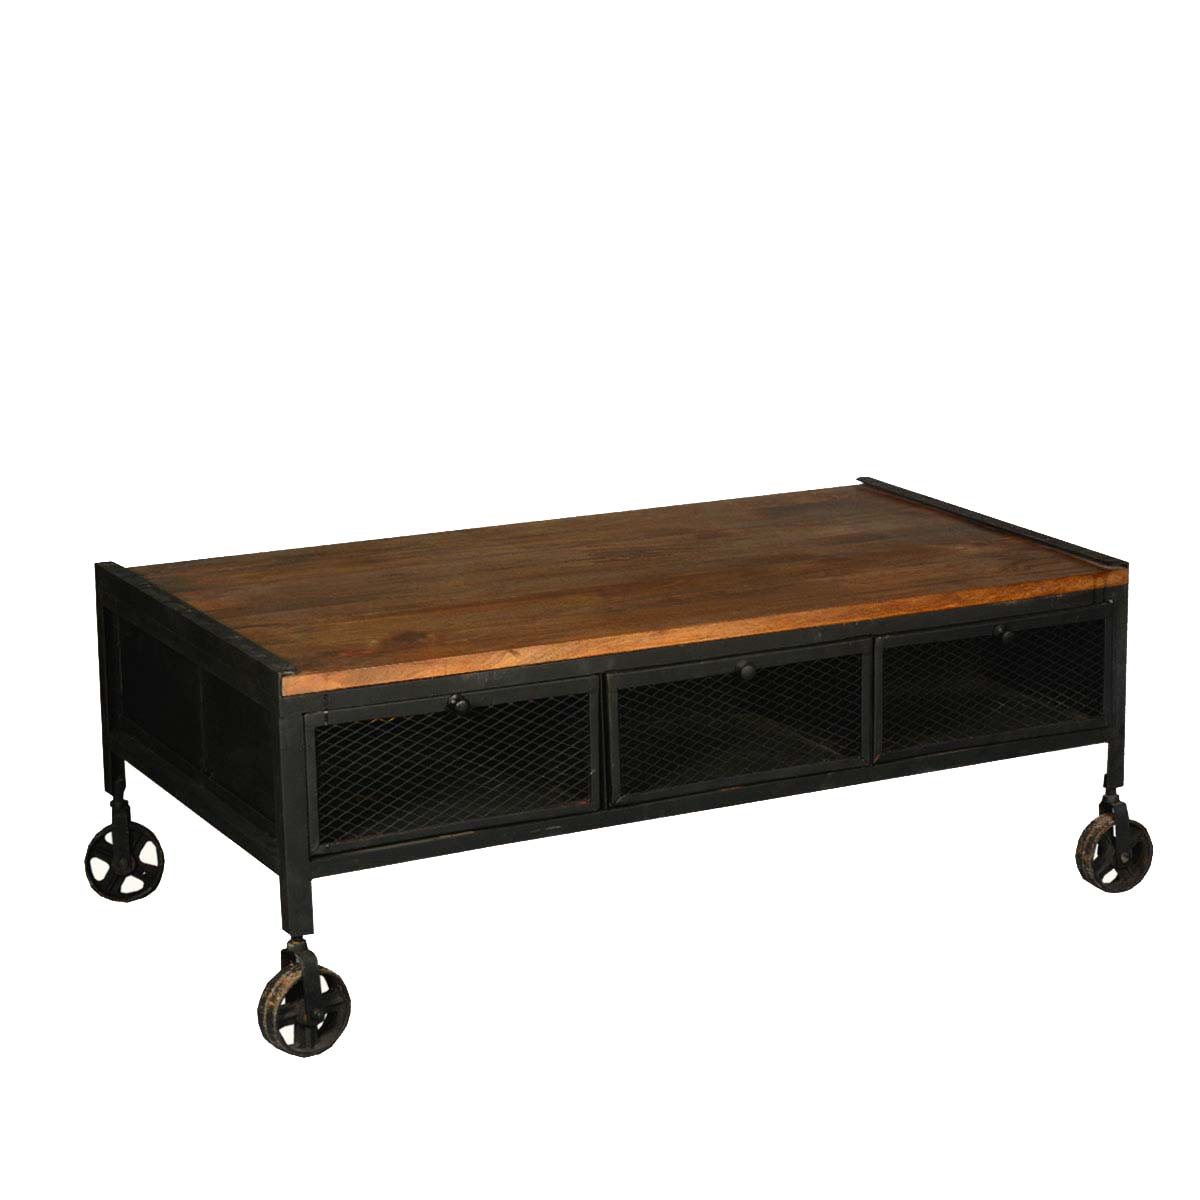 Aiden industrial rustic coffee table with drawers for Coffee tables industrial